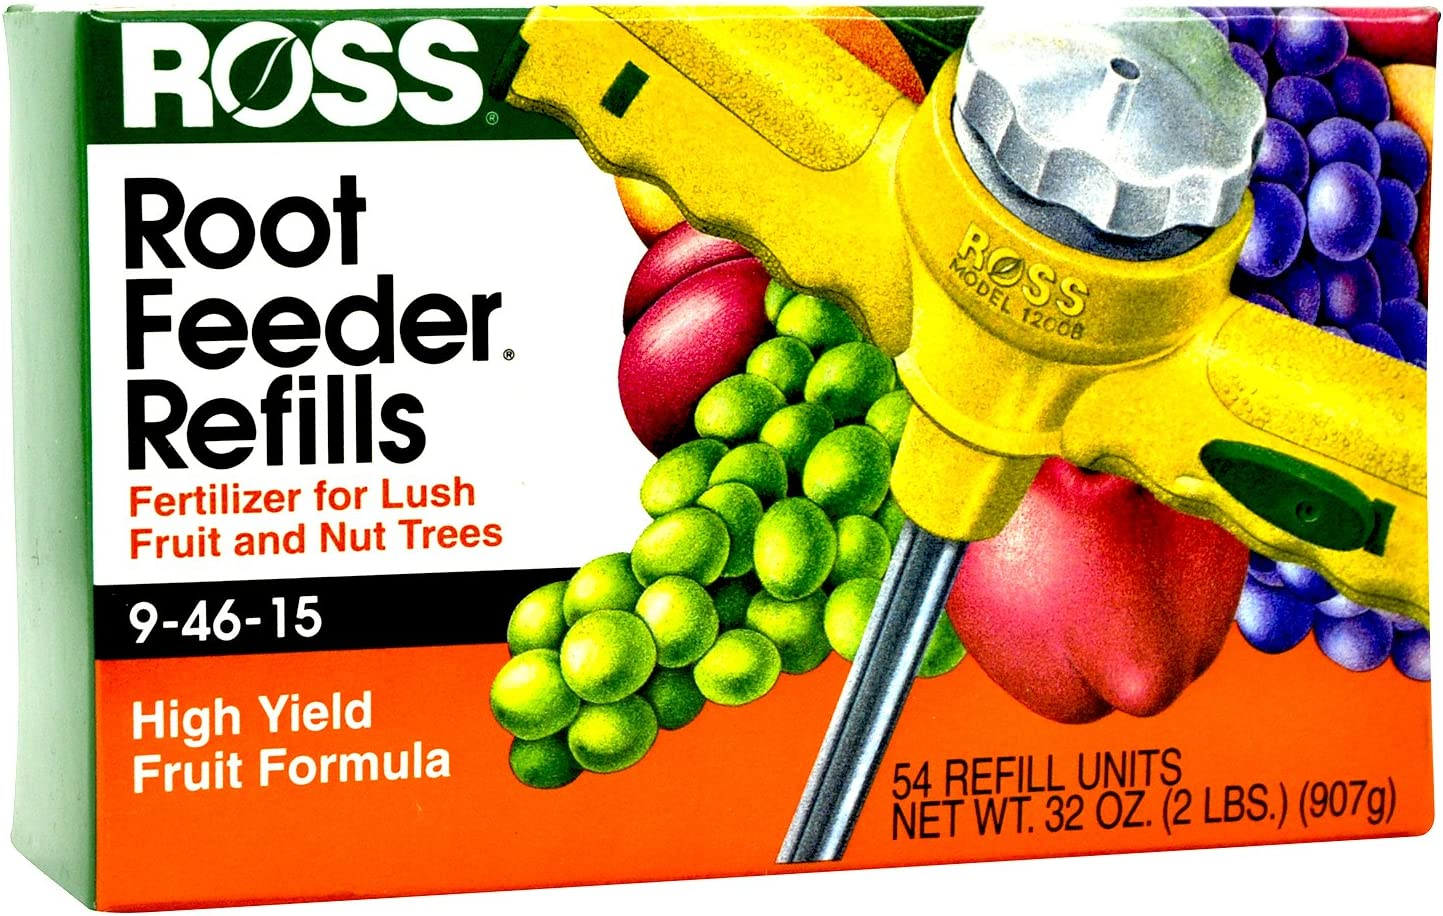 Ross Fruit & Nut Tree Fertilizer Refills for Ross Root Feeder, 9-46-15 (Ideal for Watering During Droughts) High Yield Fruit Formula, 54 Refills